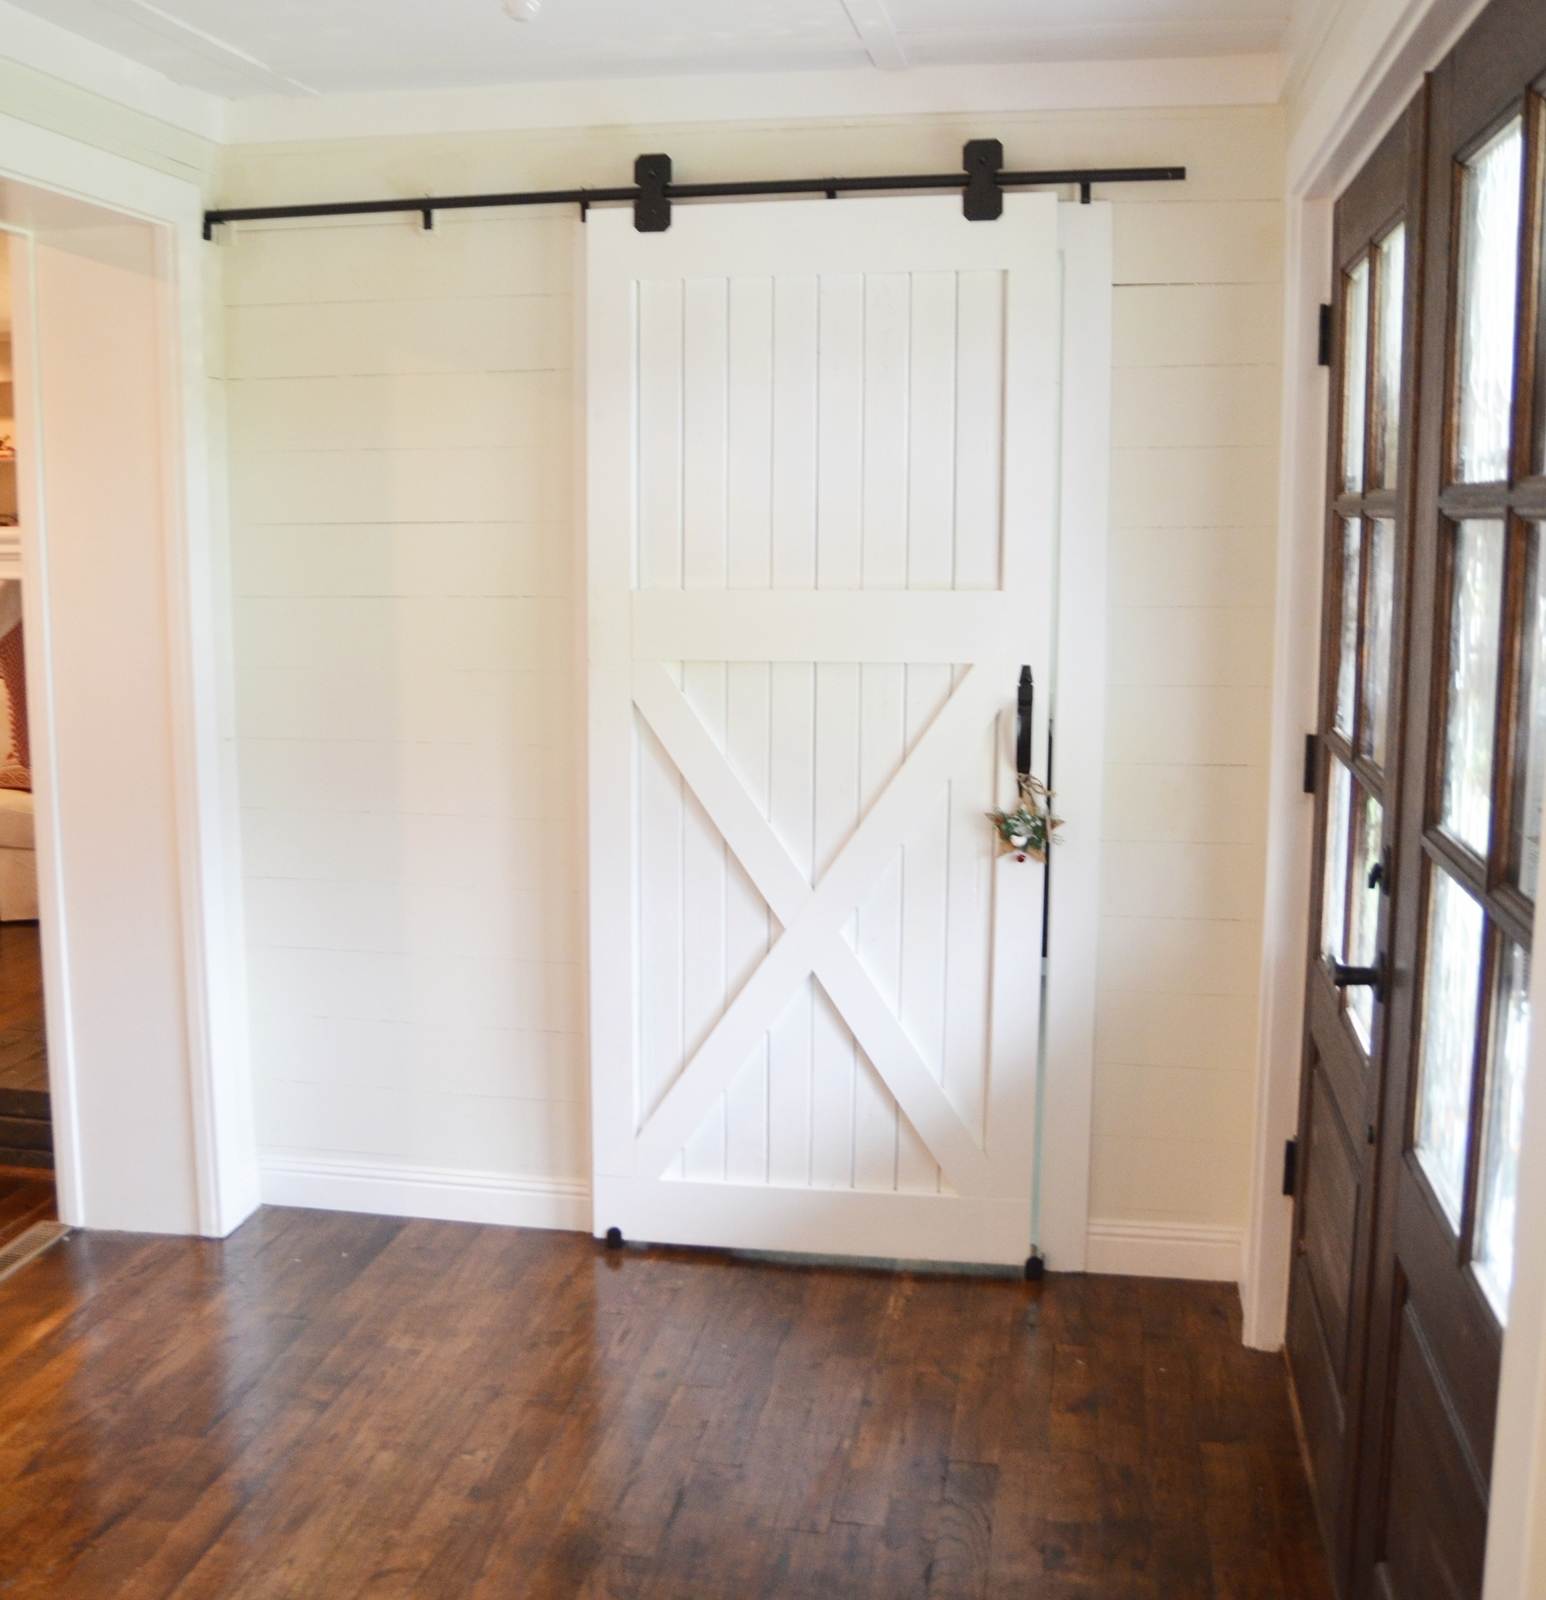 Diy barn door designs and tutorials from thrifty decor chick for Barn door pictures